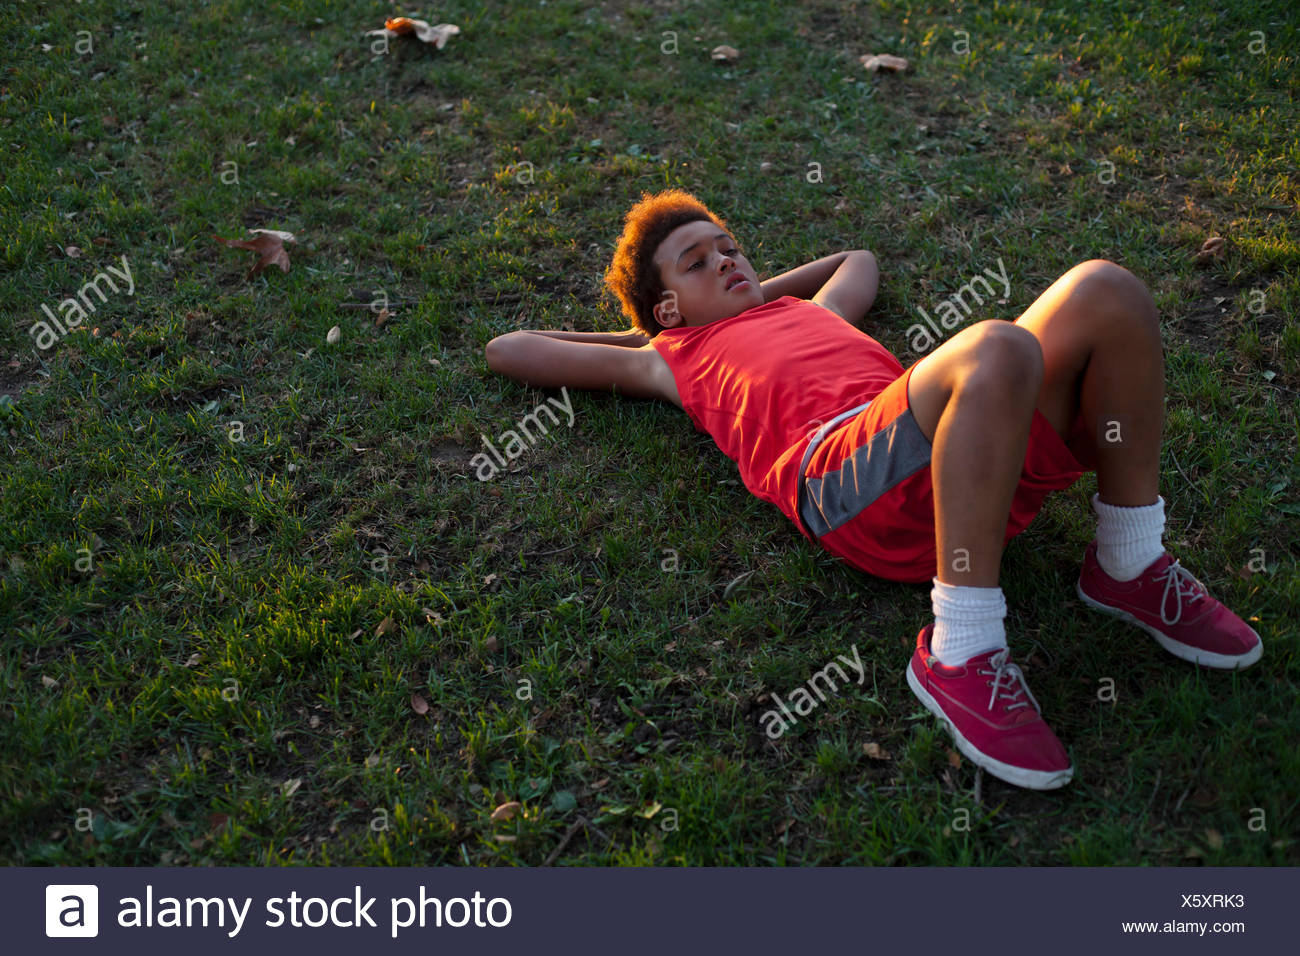 Sad looking boy lying on back in park - Stock Image